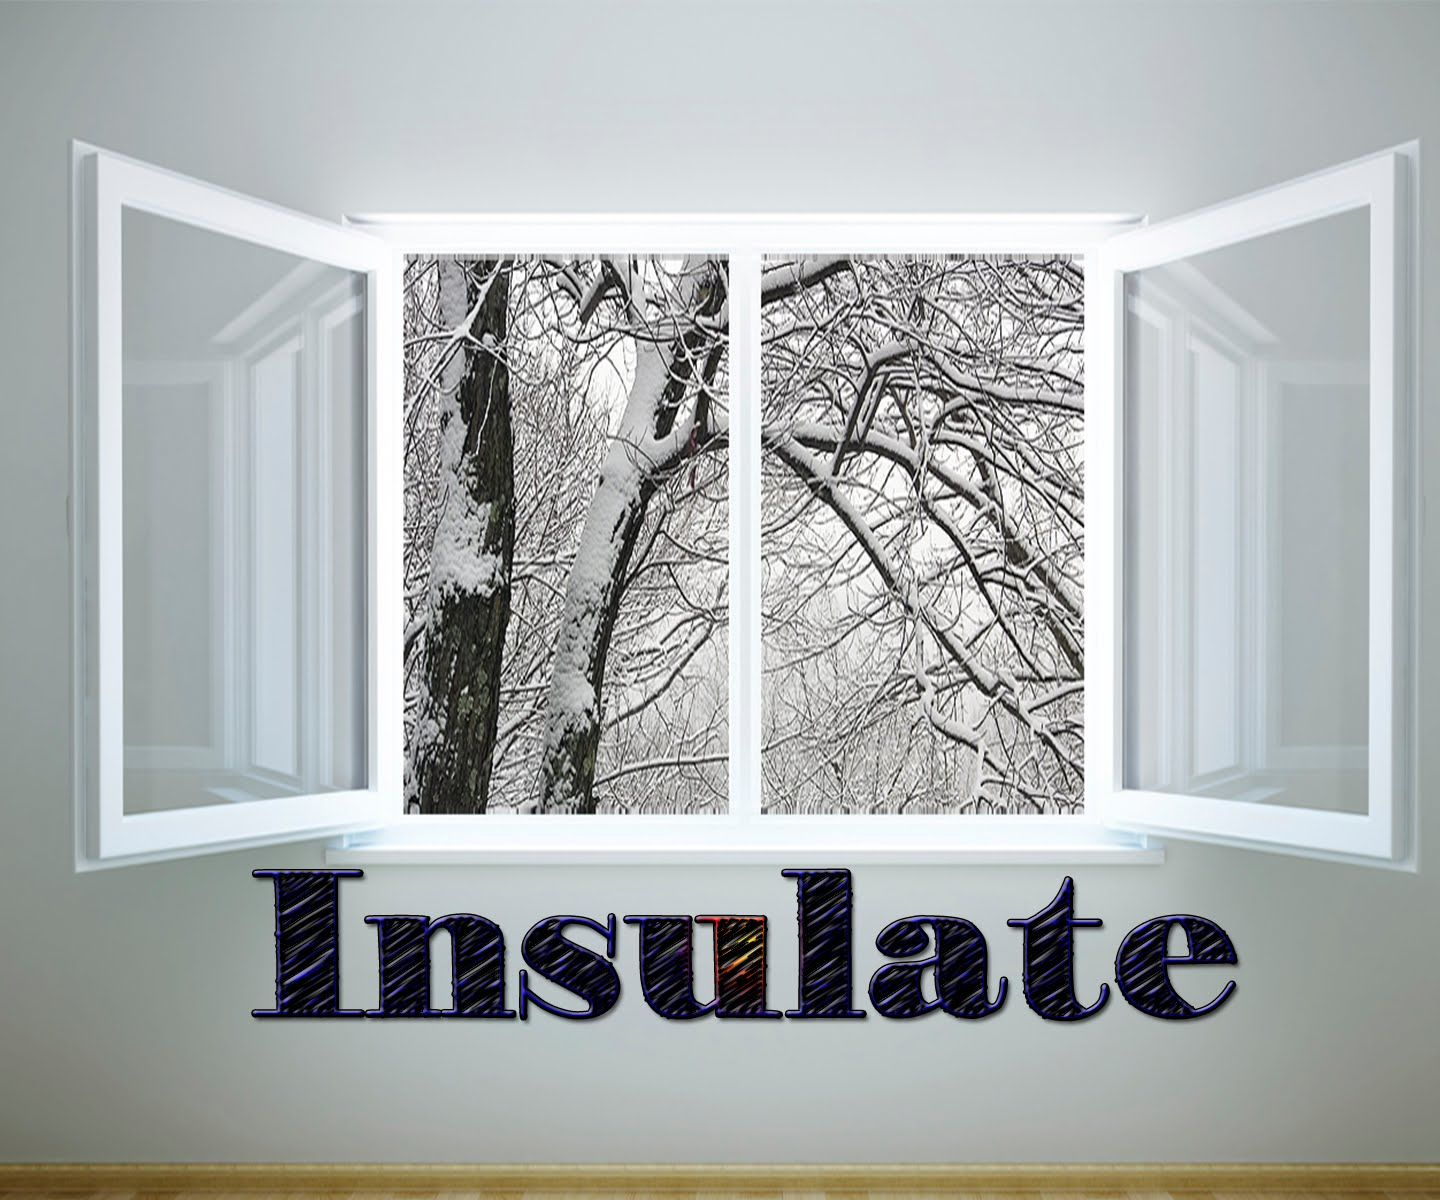 How to Insulate Your Windows for Winter